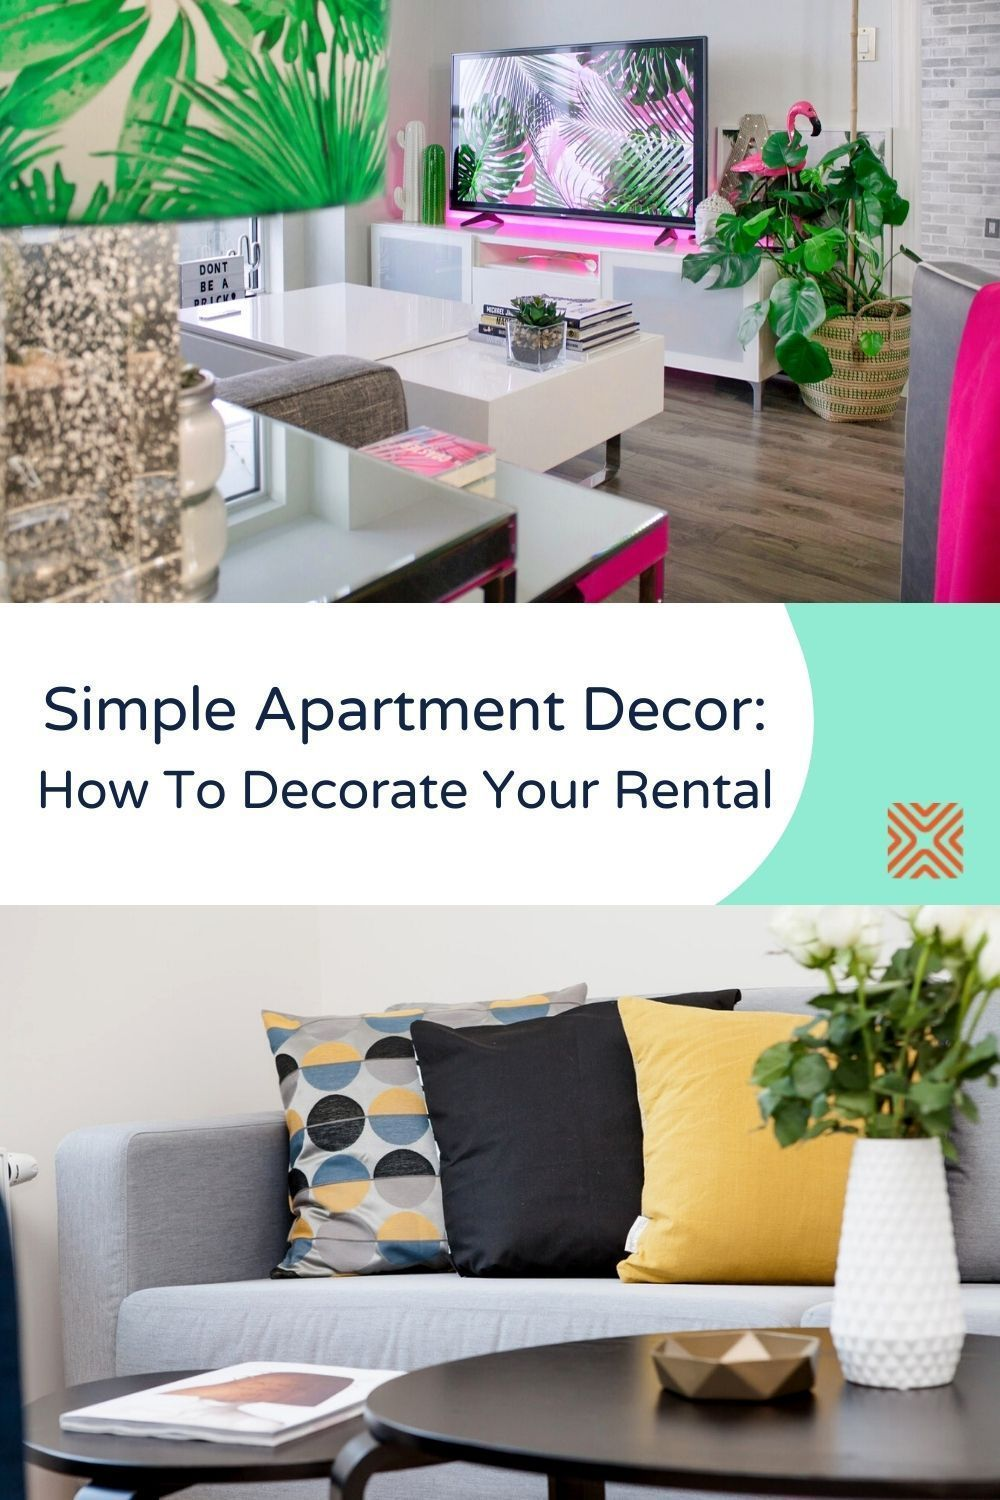 Modern Apartment Decor 13 Ideas And Designs To Inspire You In 2020 Modern Apartment Decor Simple Apartment Decor Apartment Decor